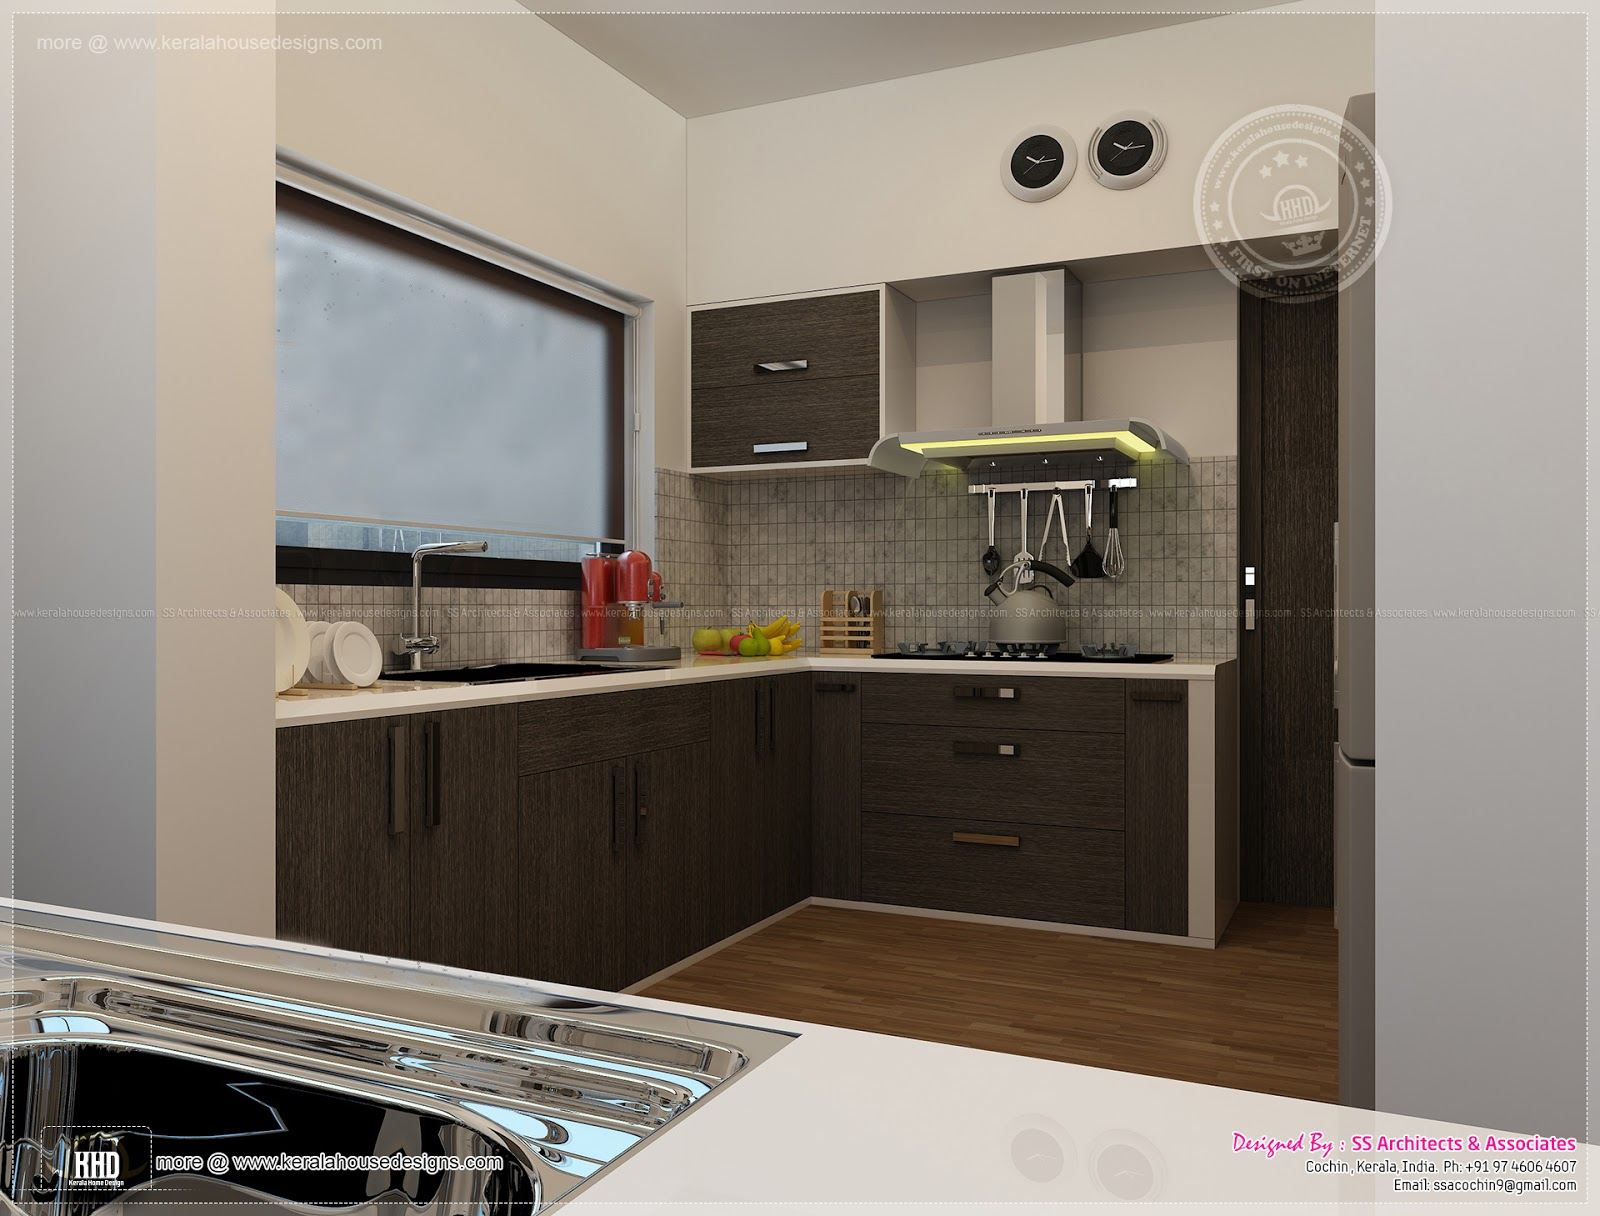 Kitchen interior views by ss architects cochin home for Kitchen interior design images